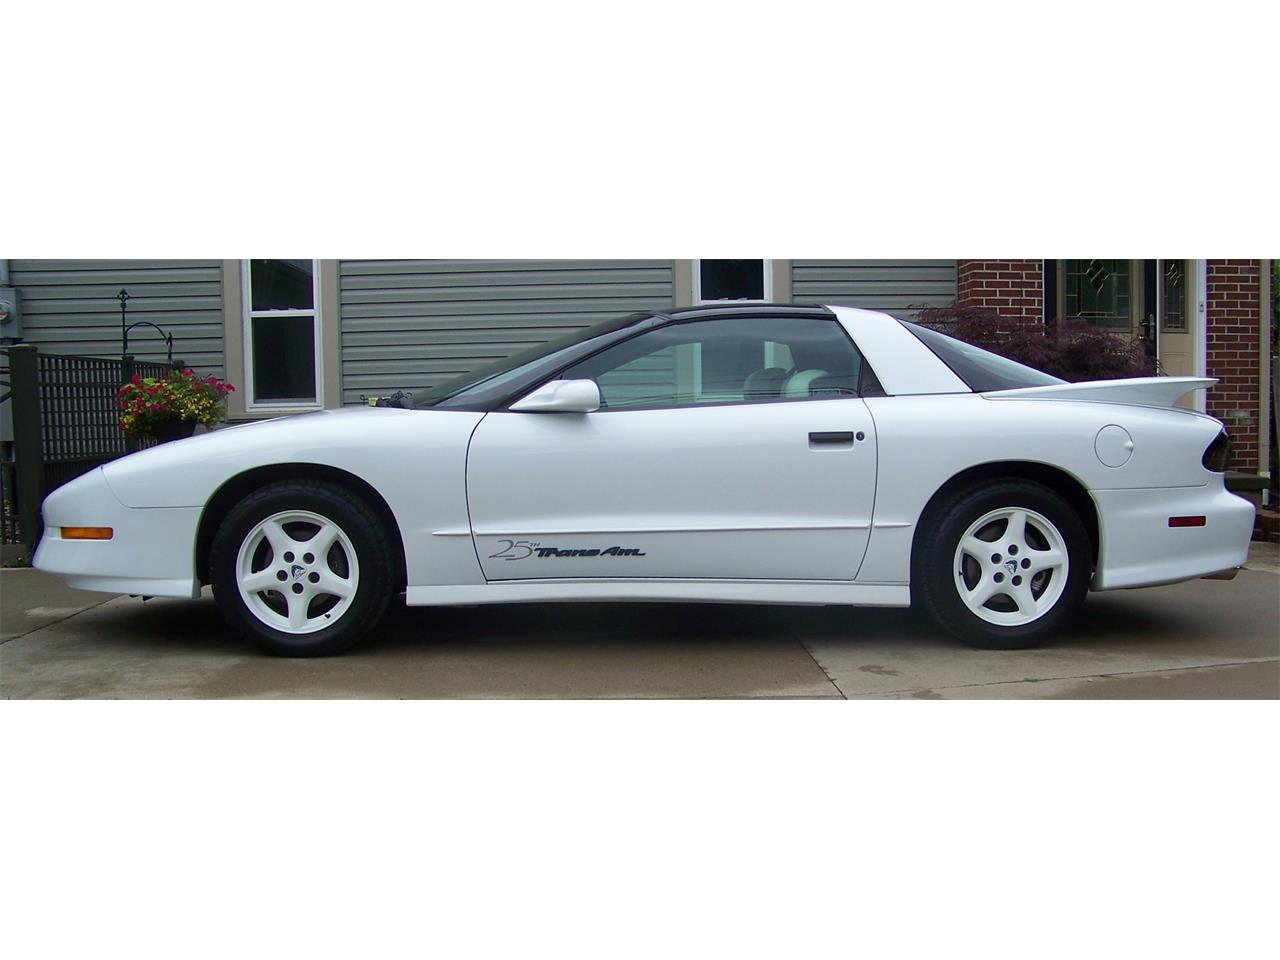 Large Picture of '94 Firebird Trans Am - $17,500.00 - NOQC